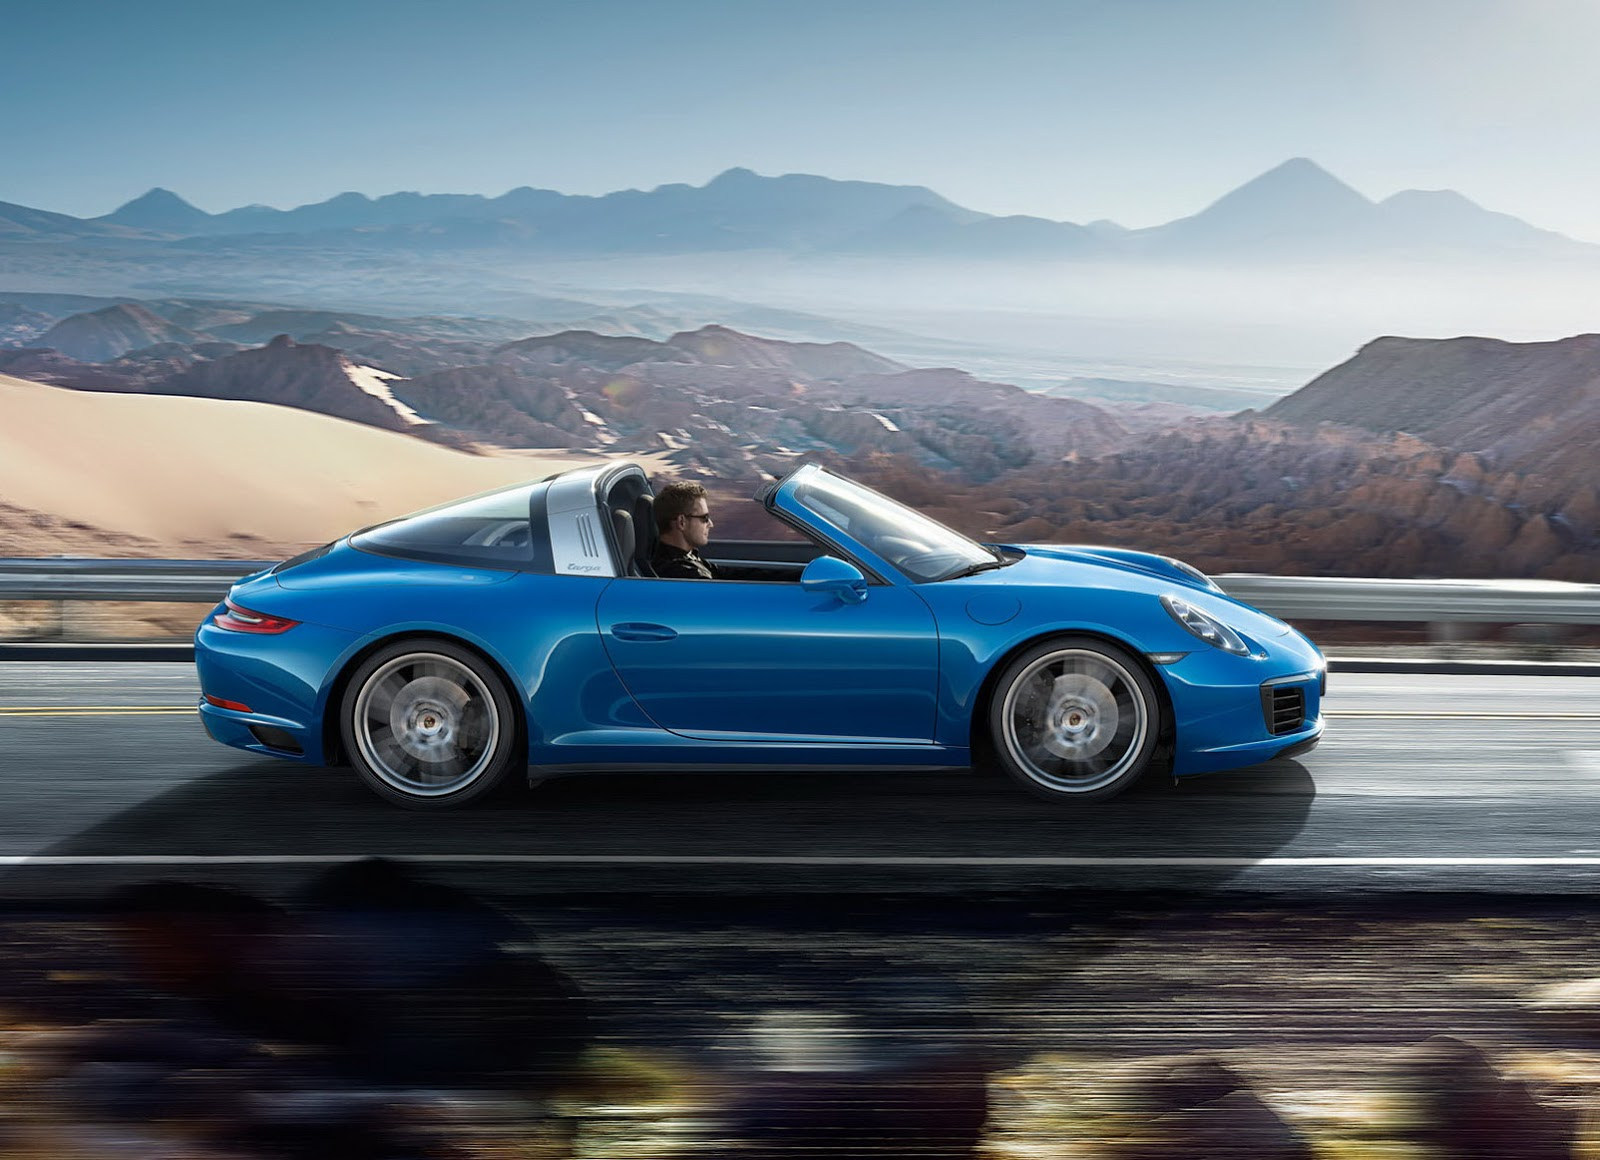 porsche 911 targa 4 e targa 4s facelift 2016 porsche autopareri. Black Bedroom Furniture Sets. Home Design Ideas